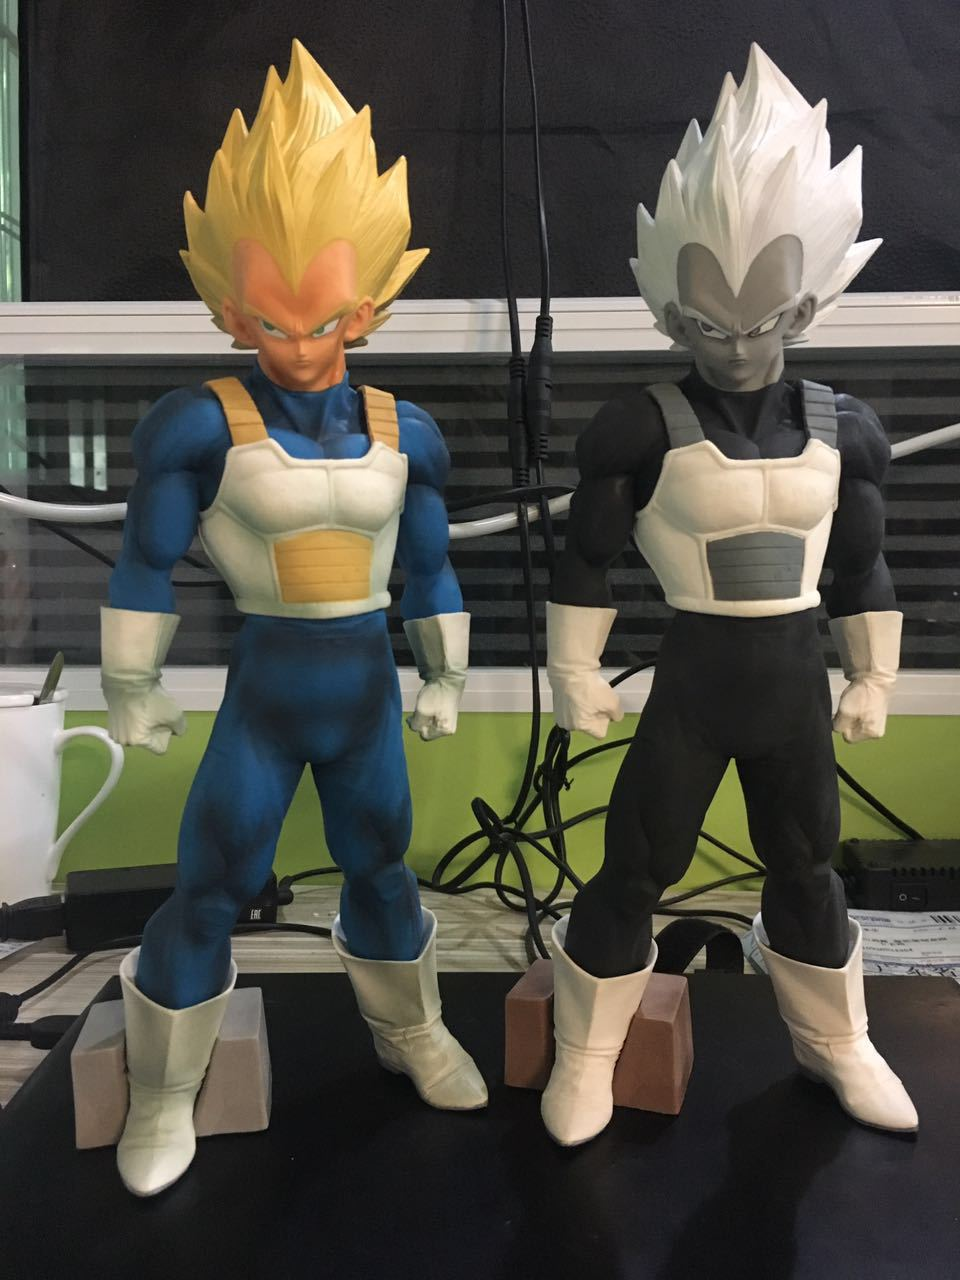 anime Dragon Ball z super saiyan vegeta action figure pvc classic collection Dragon Ball figure model garage kit toy 32cm dragon ball super toy son goku action figure anime super vegeta pop model doll pvc collection toys for children christmas gifts